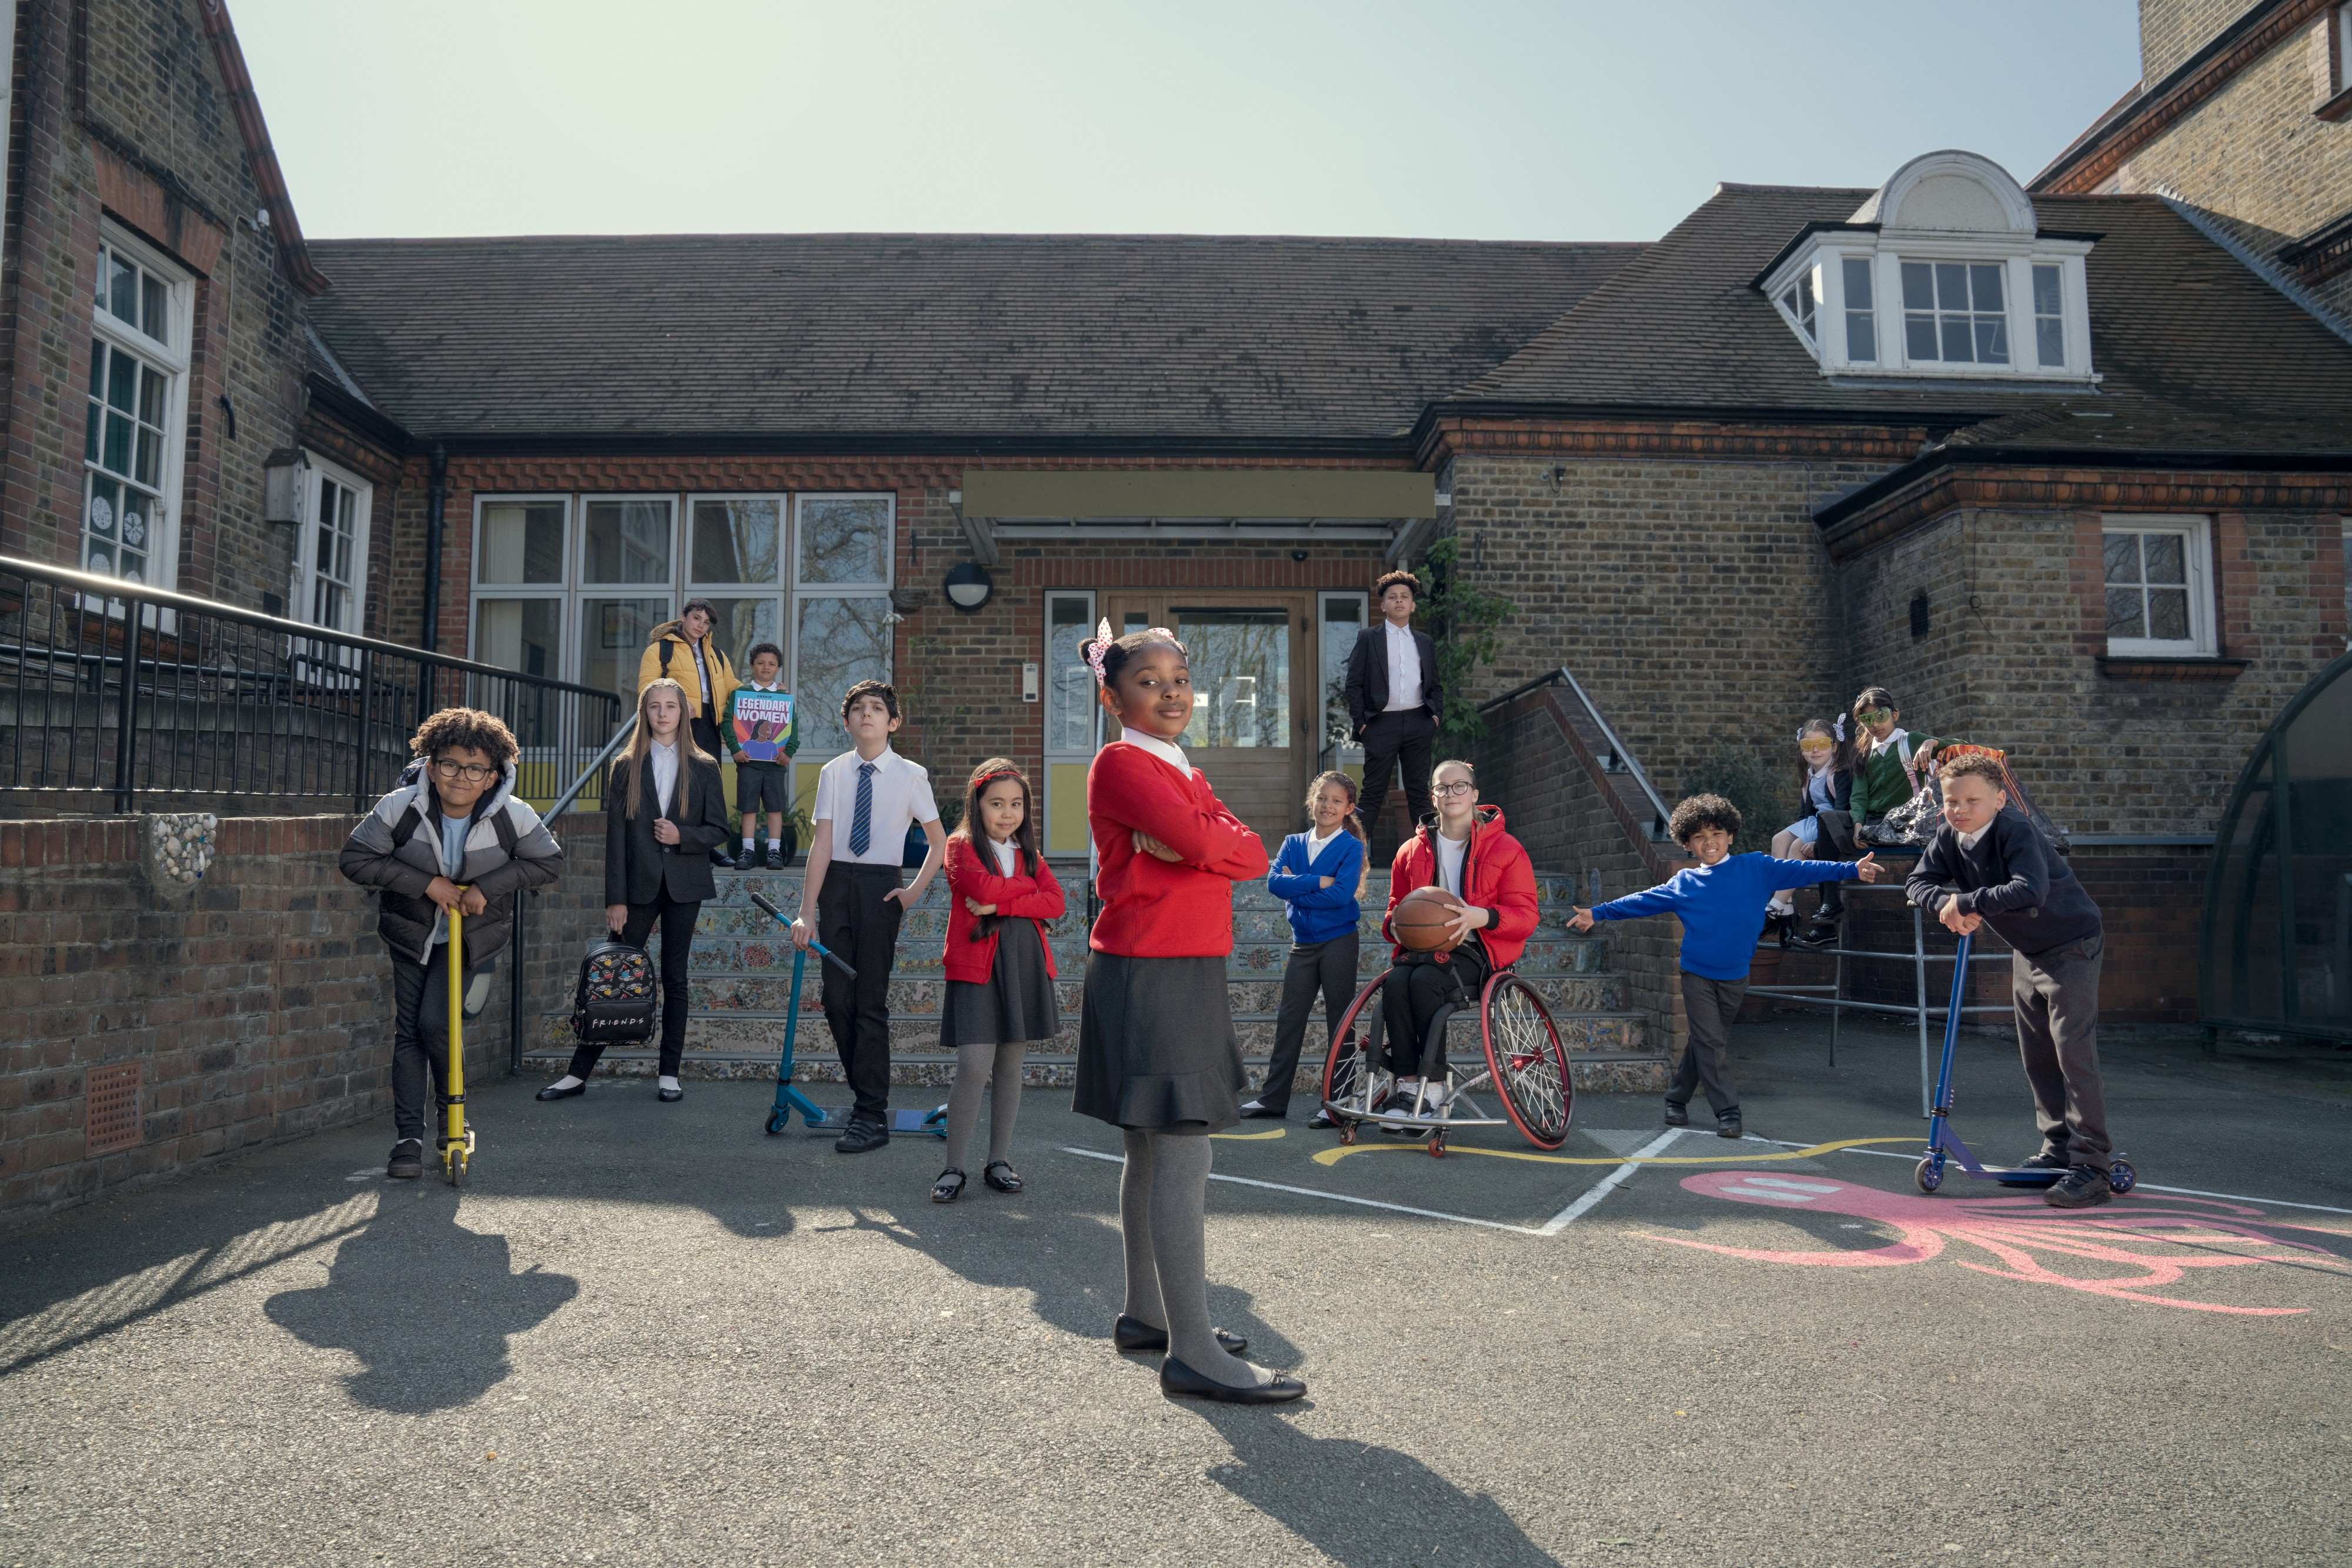 DJ Nick Grimshaw leads the love for rapping kids in George's Back to School advert